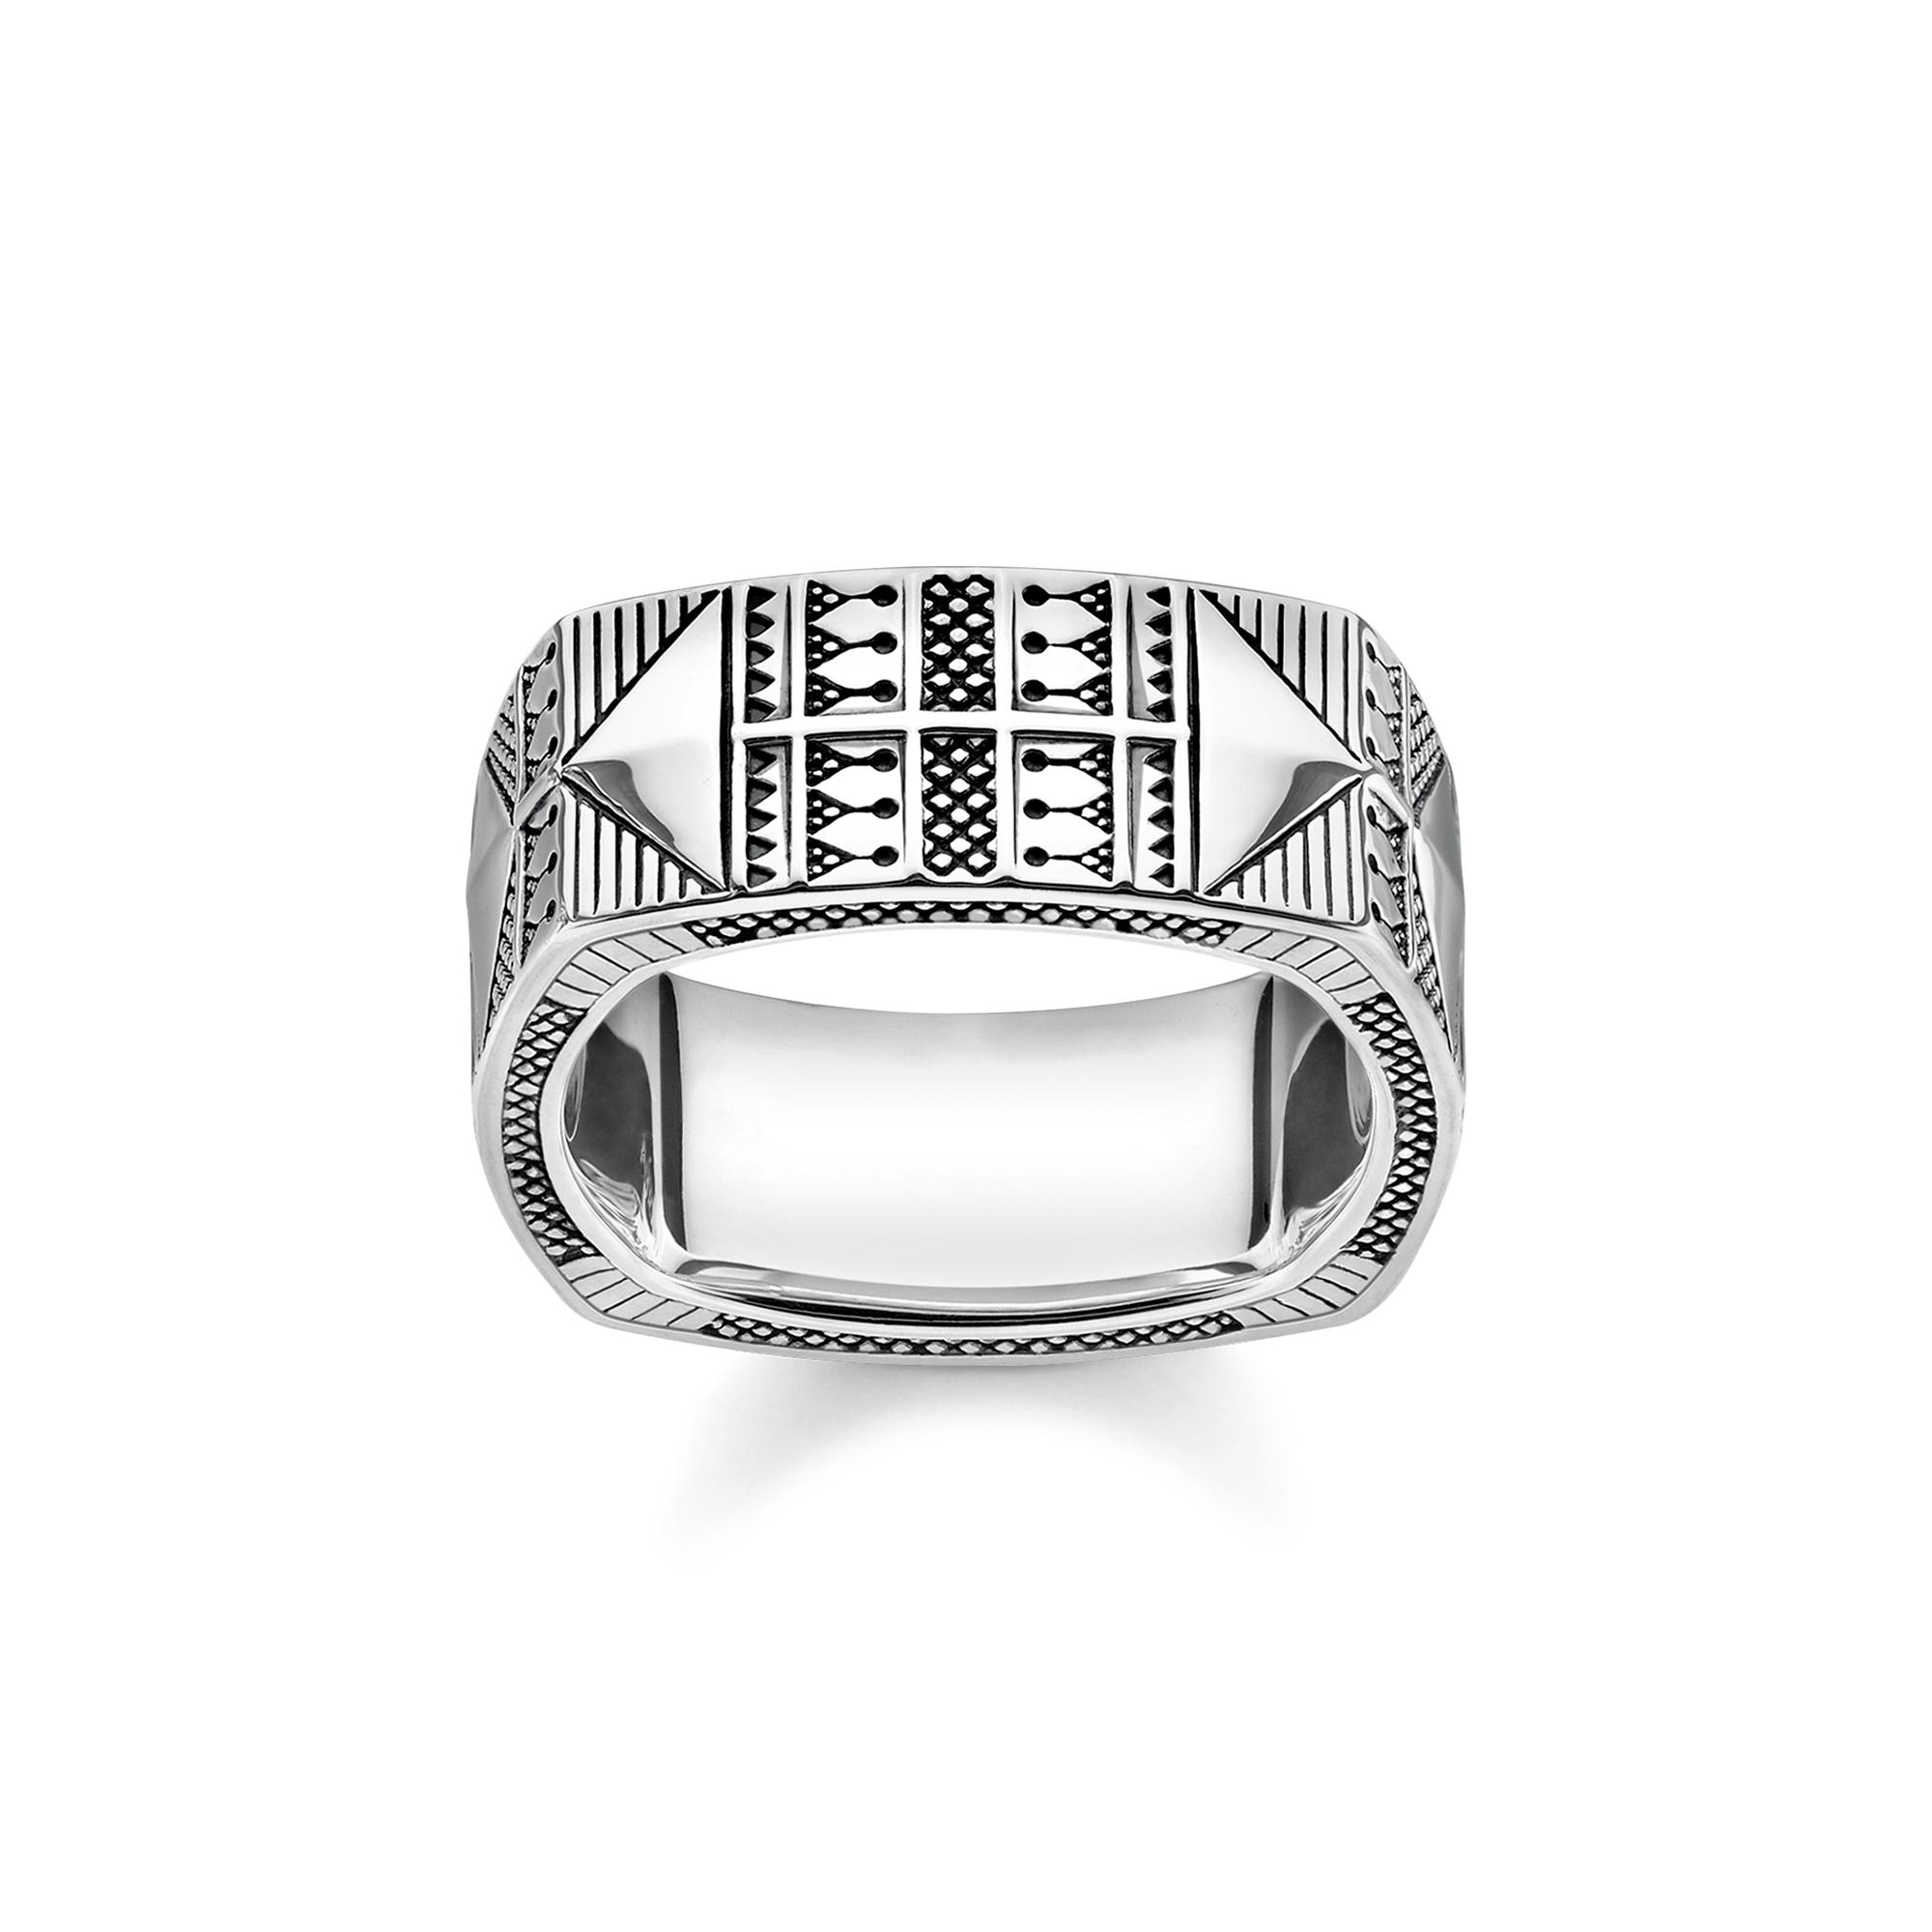 Thomas Sabo - ring - 1